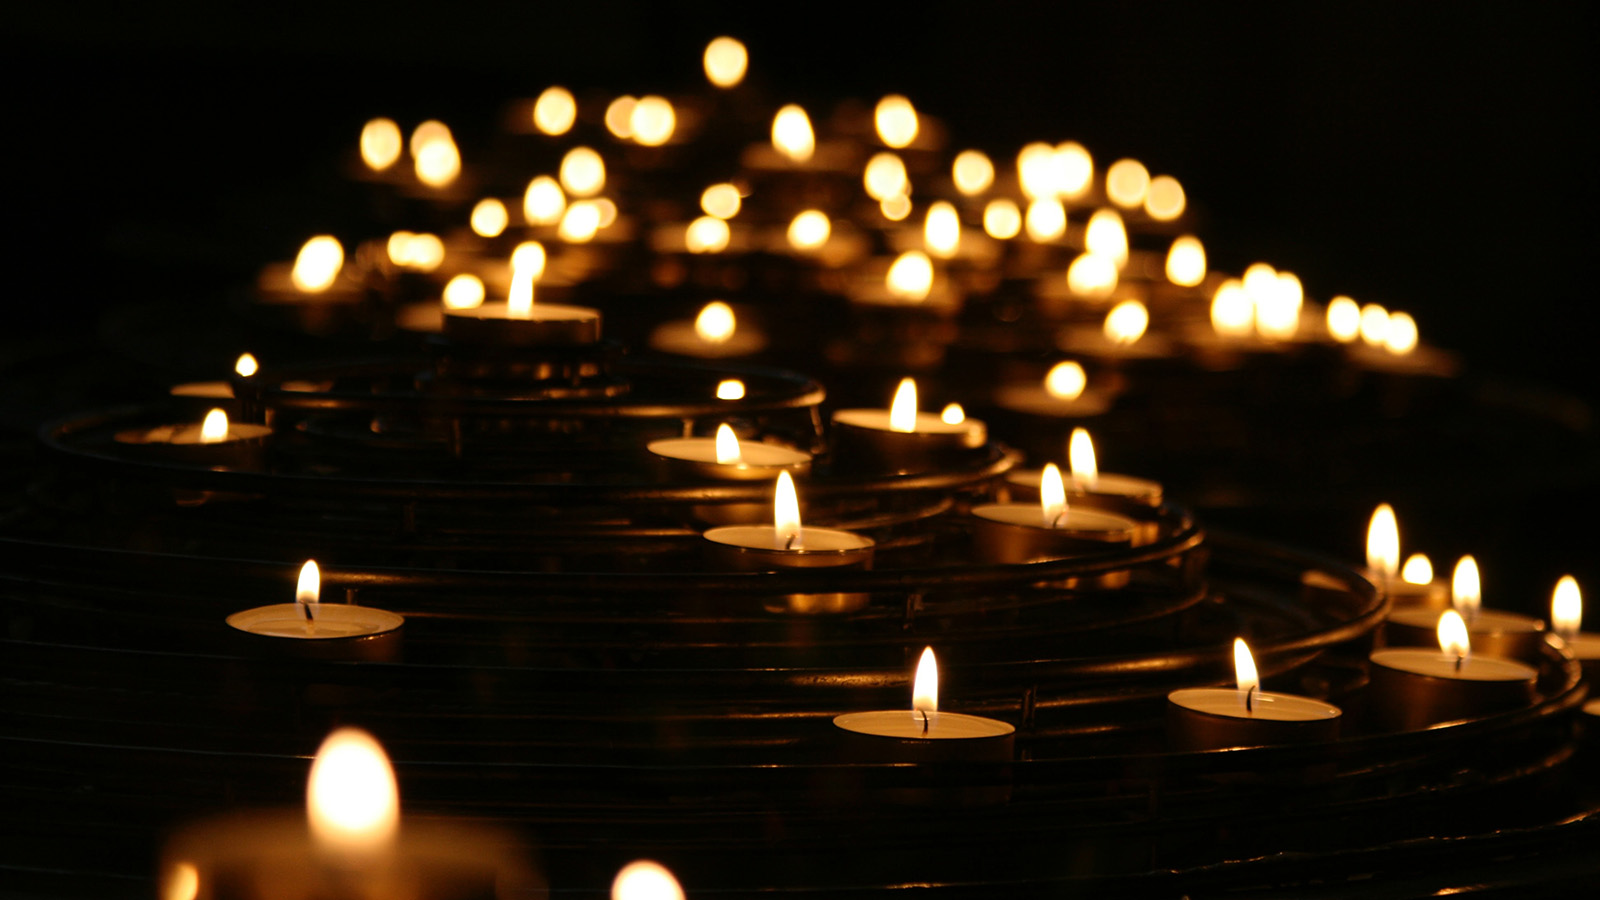 Candles floating in the water